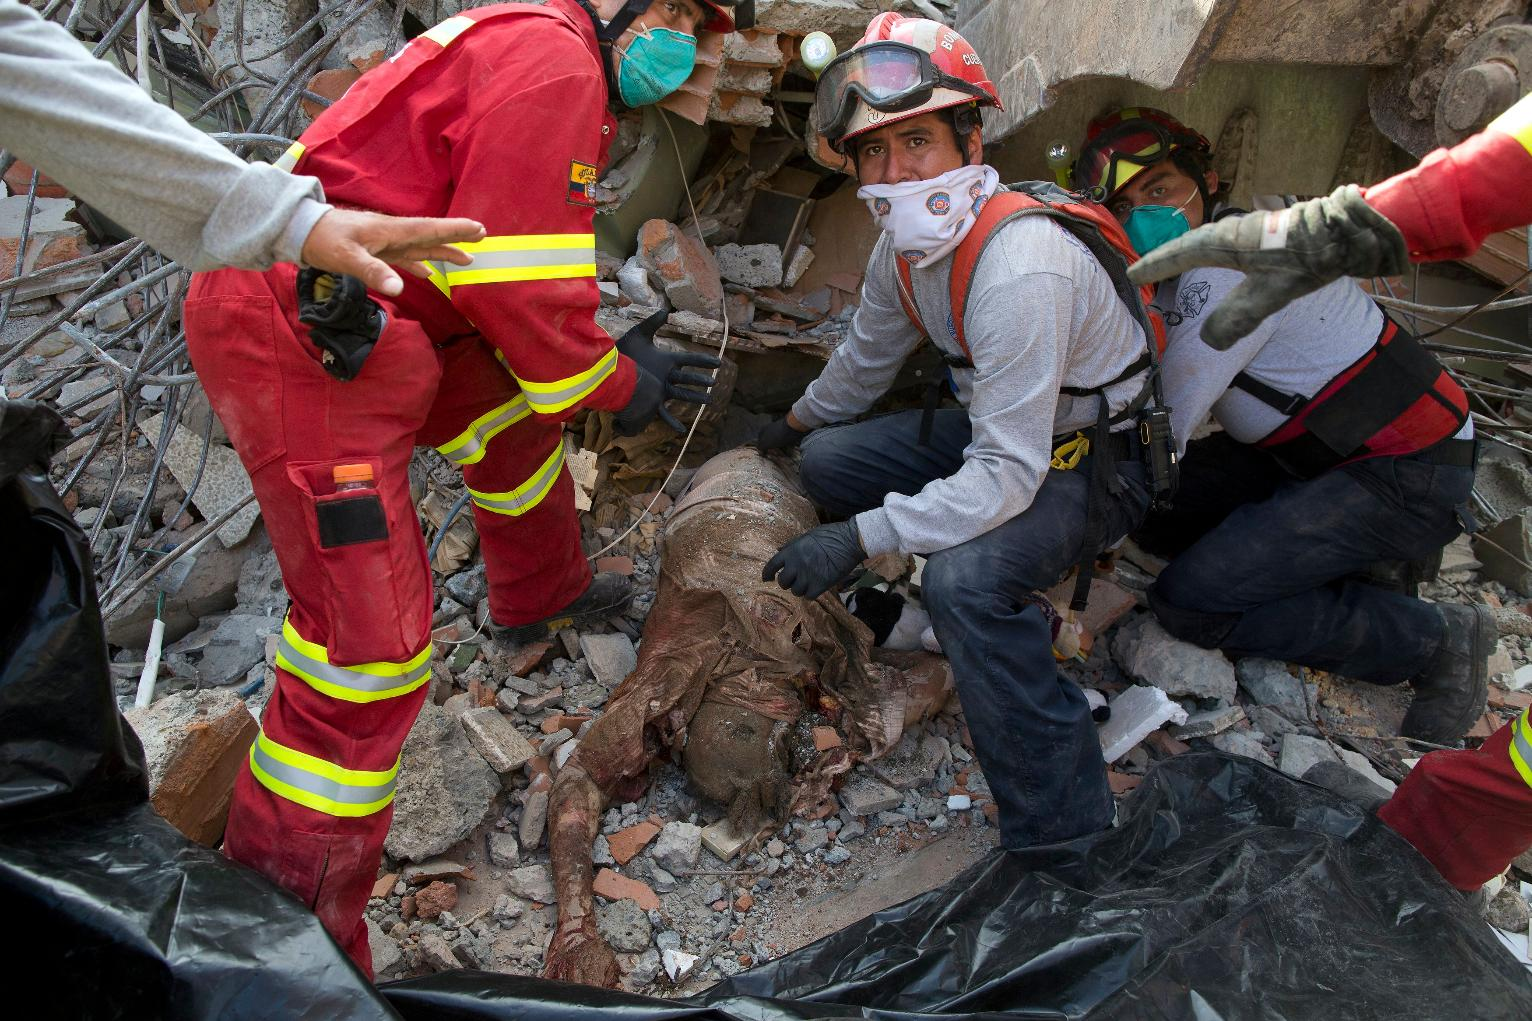 The Latest Ecuador Says Death Toll From Quake Jumps To